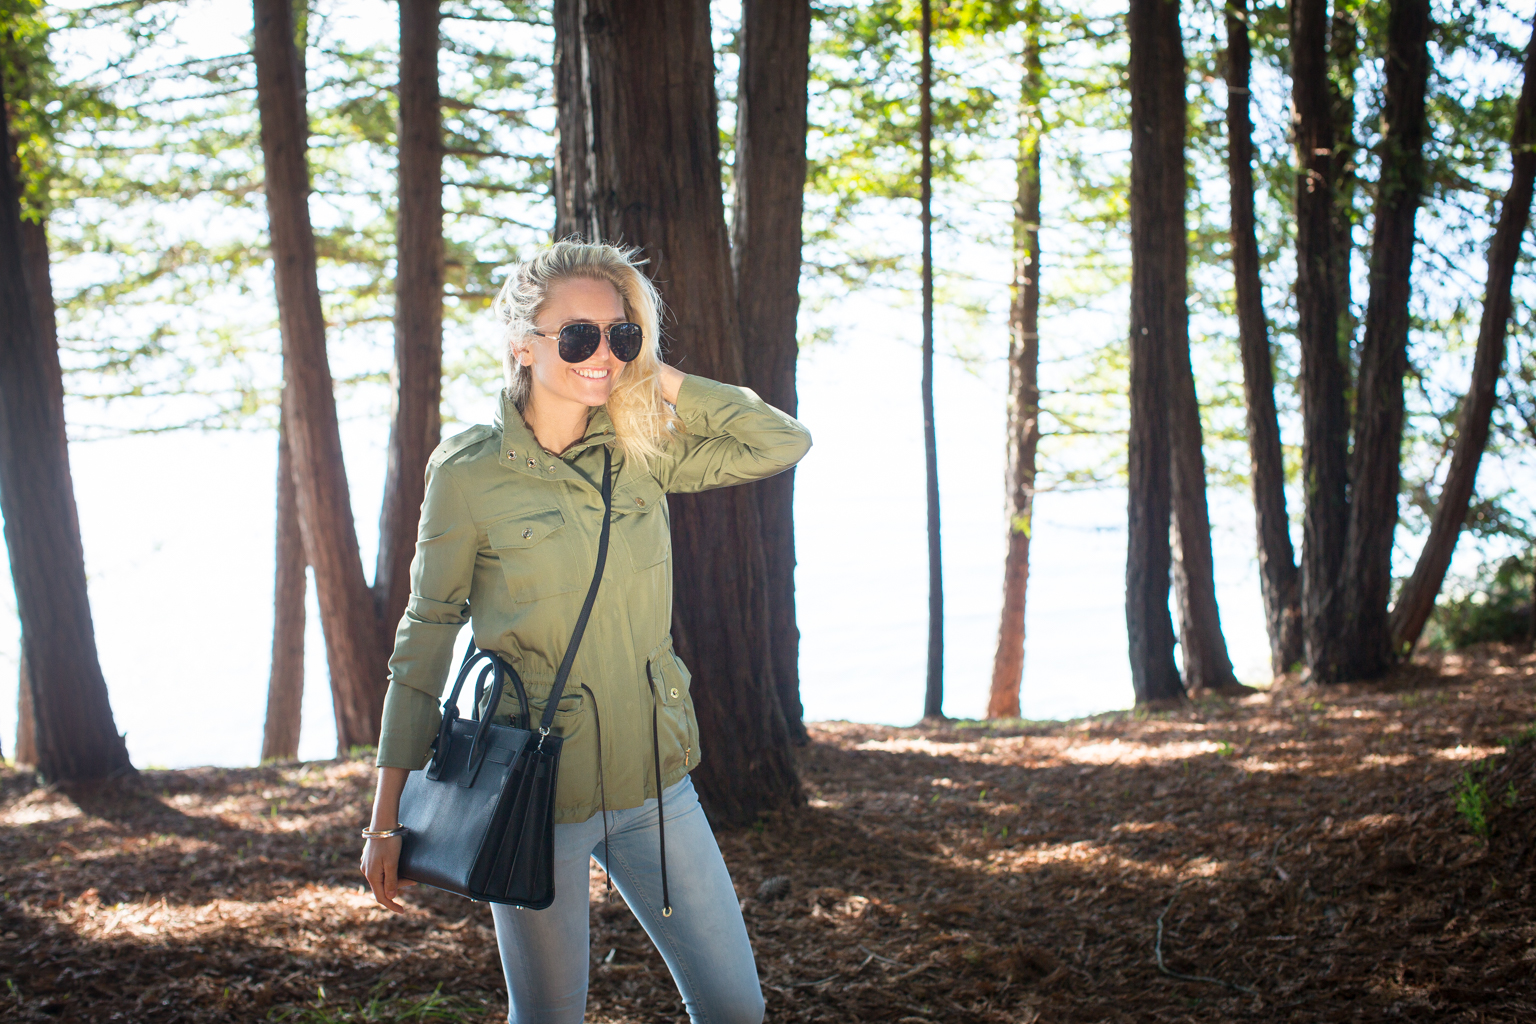 fitness-on-toast-faya-blog-girl-healthy-workout-training-travel-luxury-hotel-active-escape-series-blog-review-post-ranch-inn-big-sur-california-coast-usa-america-8